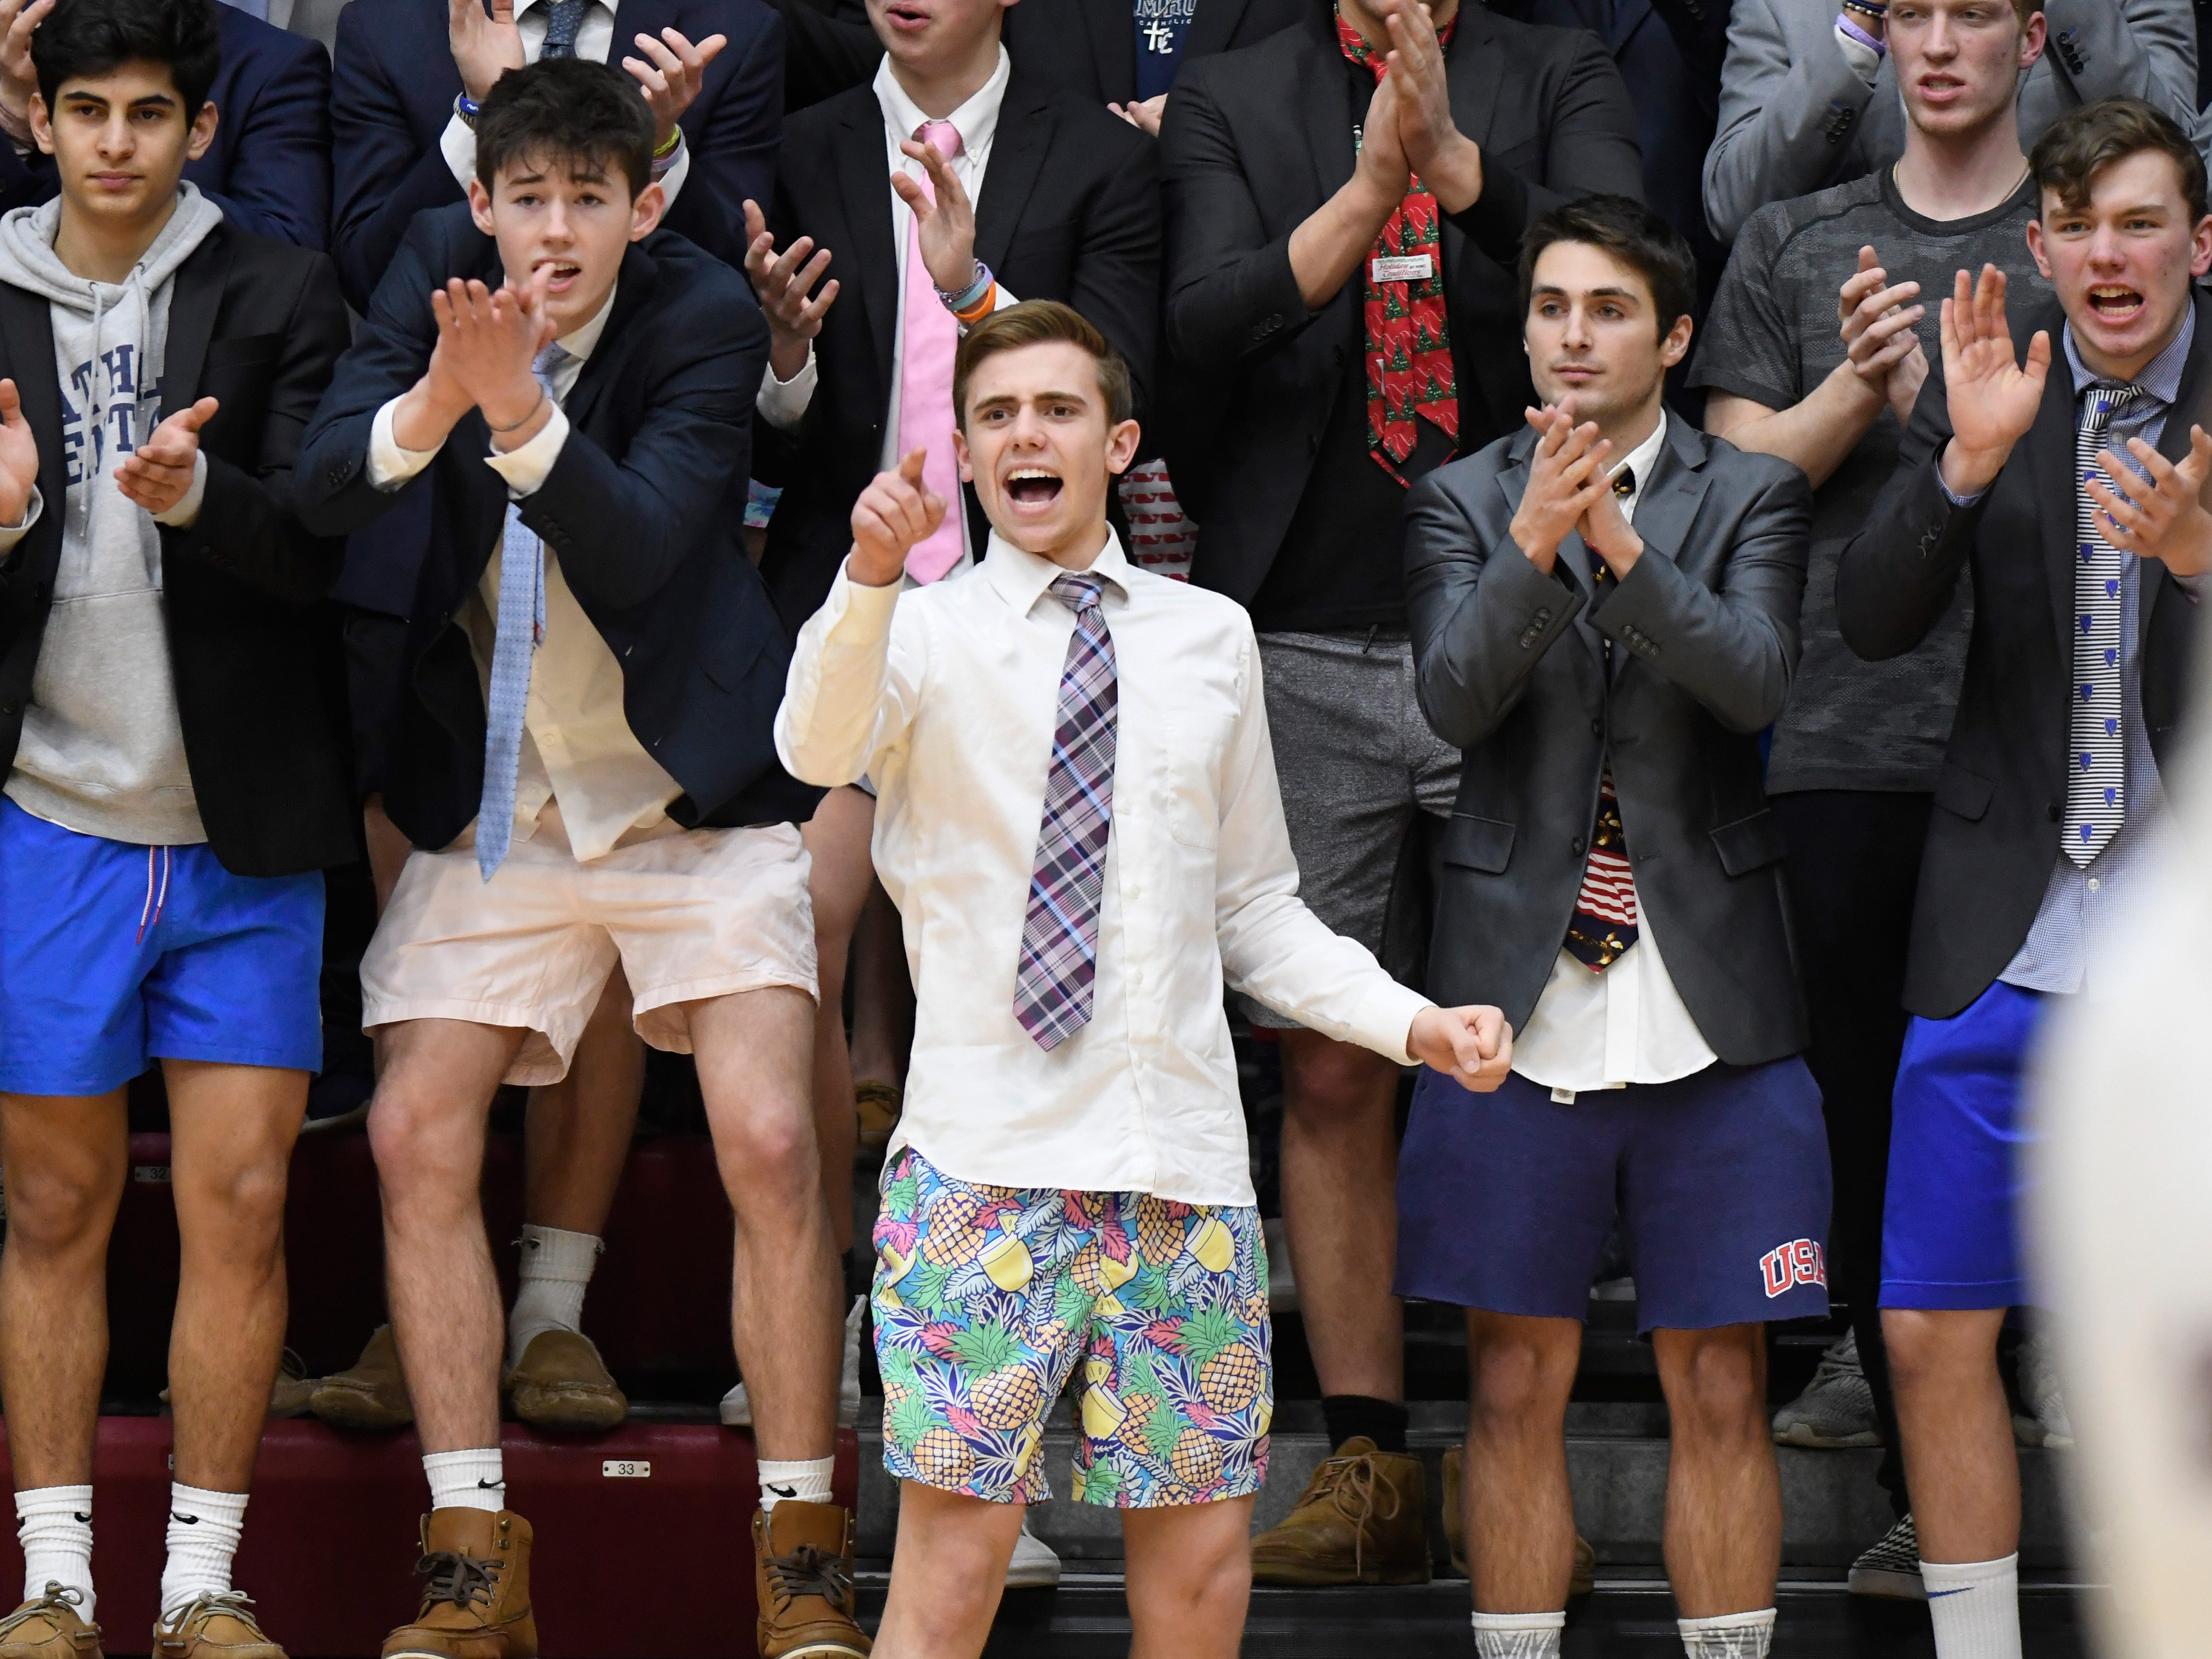 Detroit Catholic Central students, dressed in half formal attire, cheer on their team as they played against Detroit Jesuit during the fourth quarter.